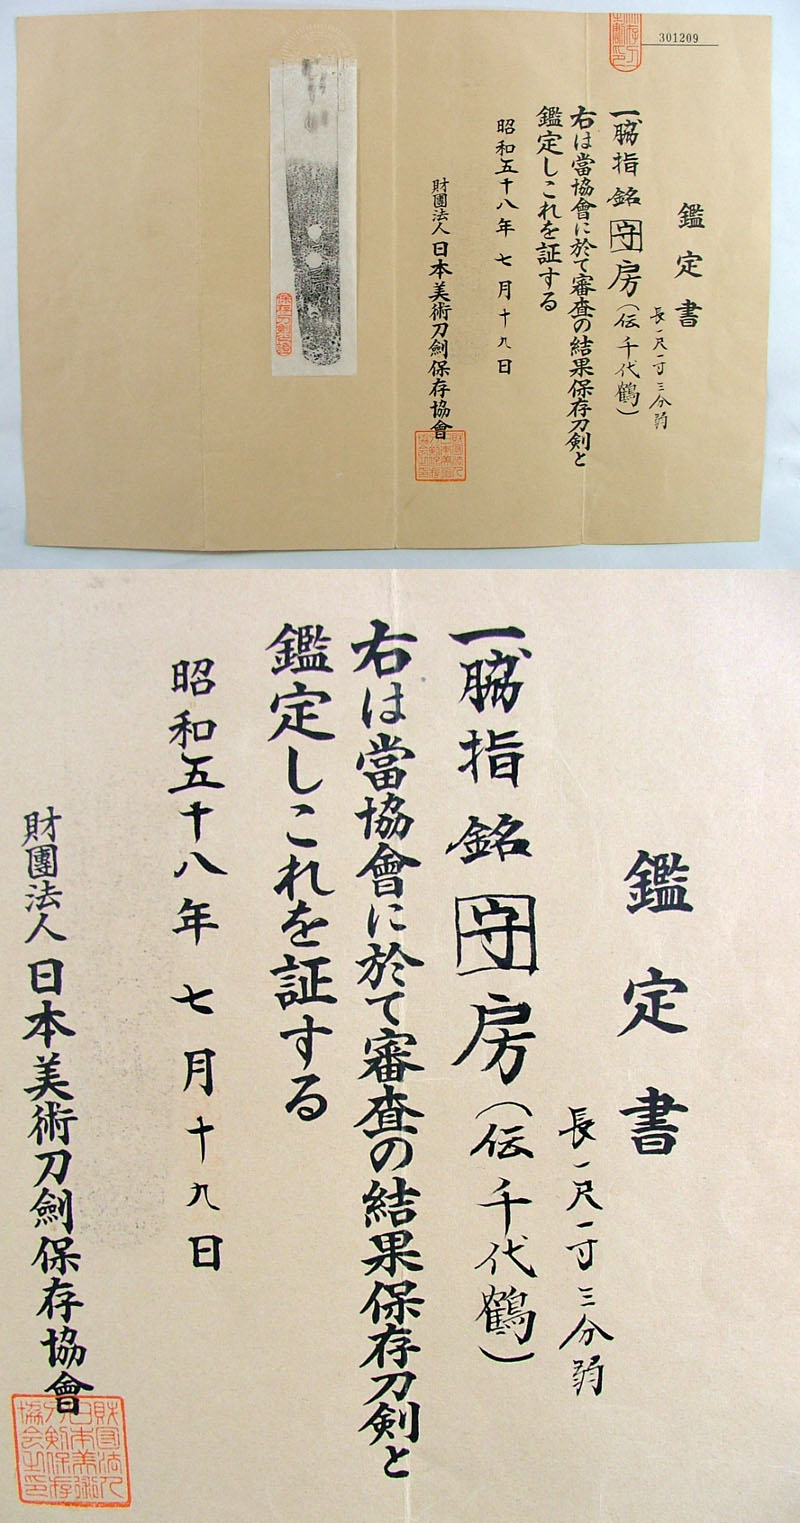 守房(伝 千代鶴) Picture of Certificate